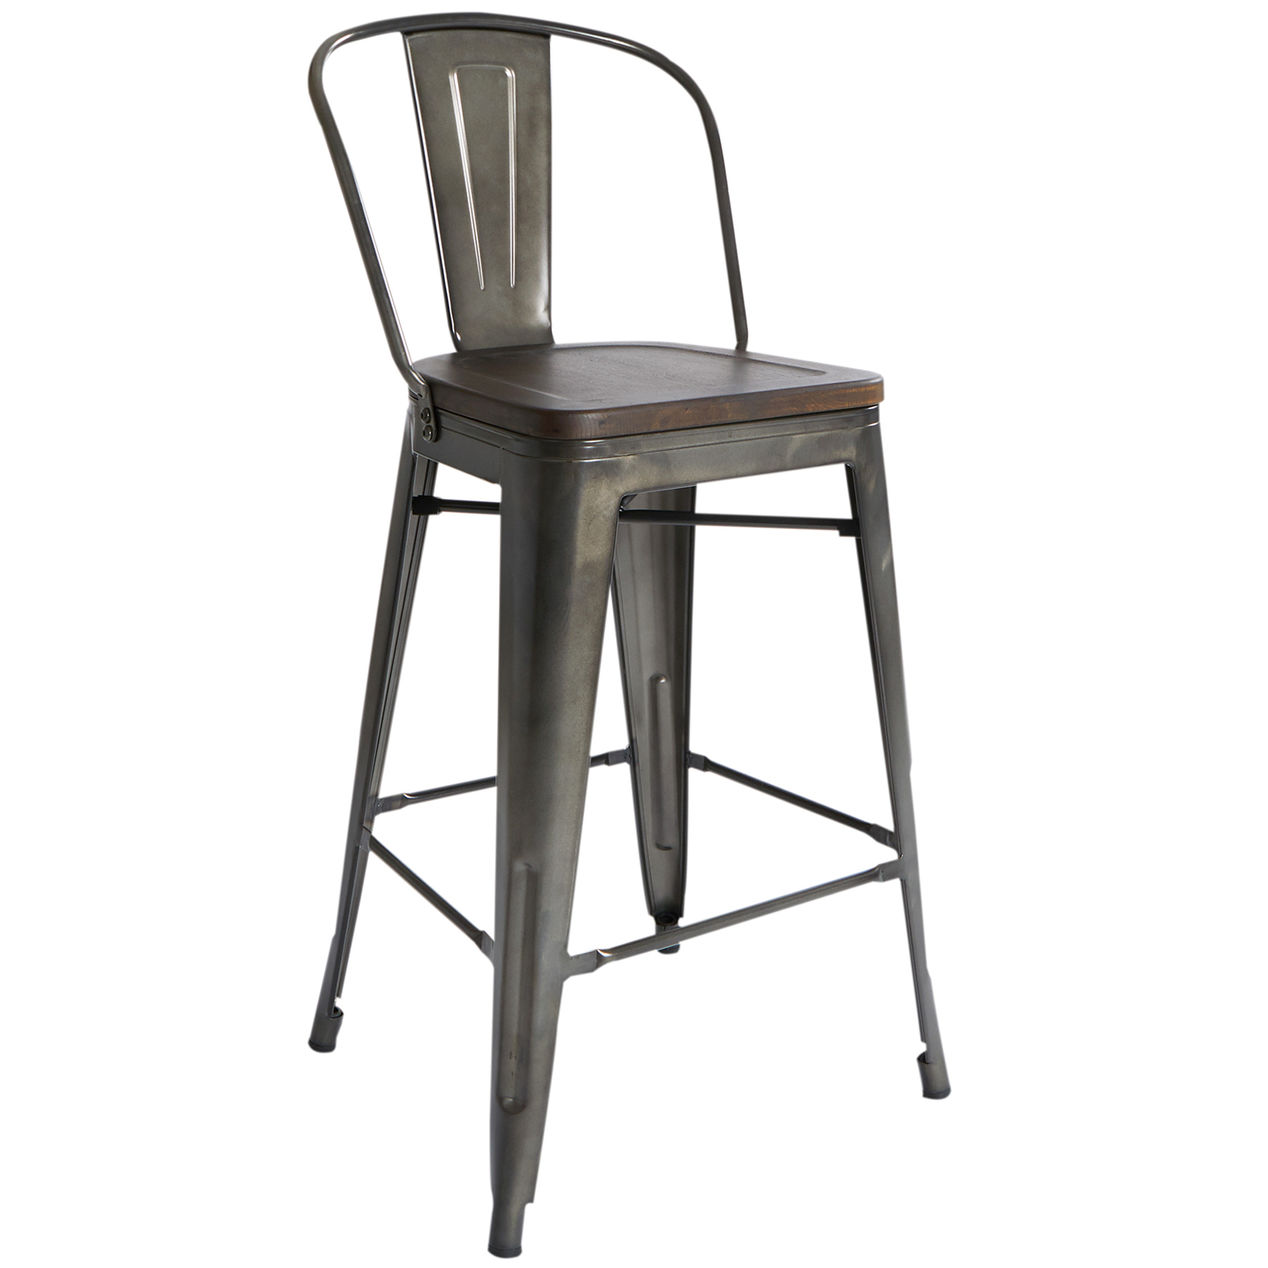 Dublin Wood And Metal Counter Stool Counter Stools Bar Stools